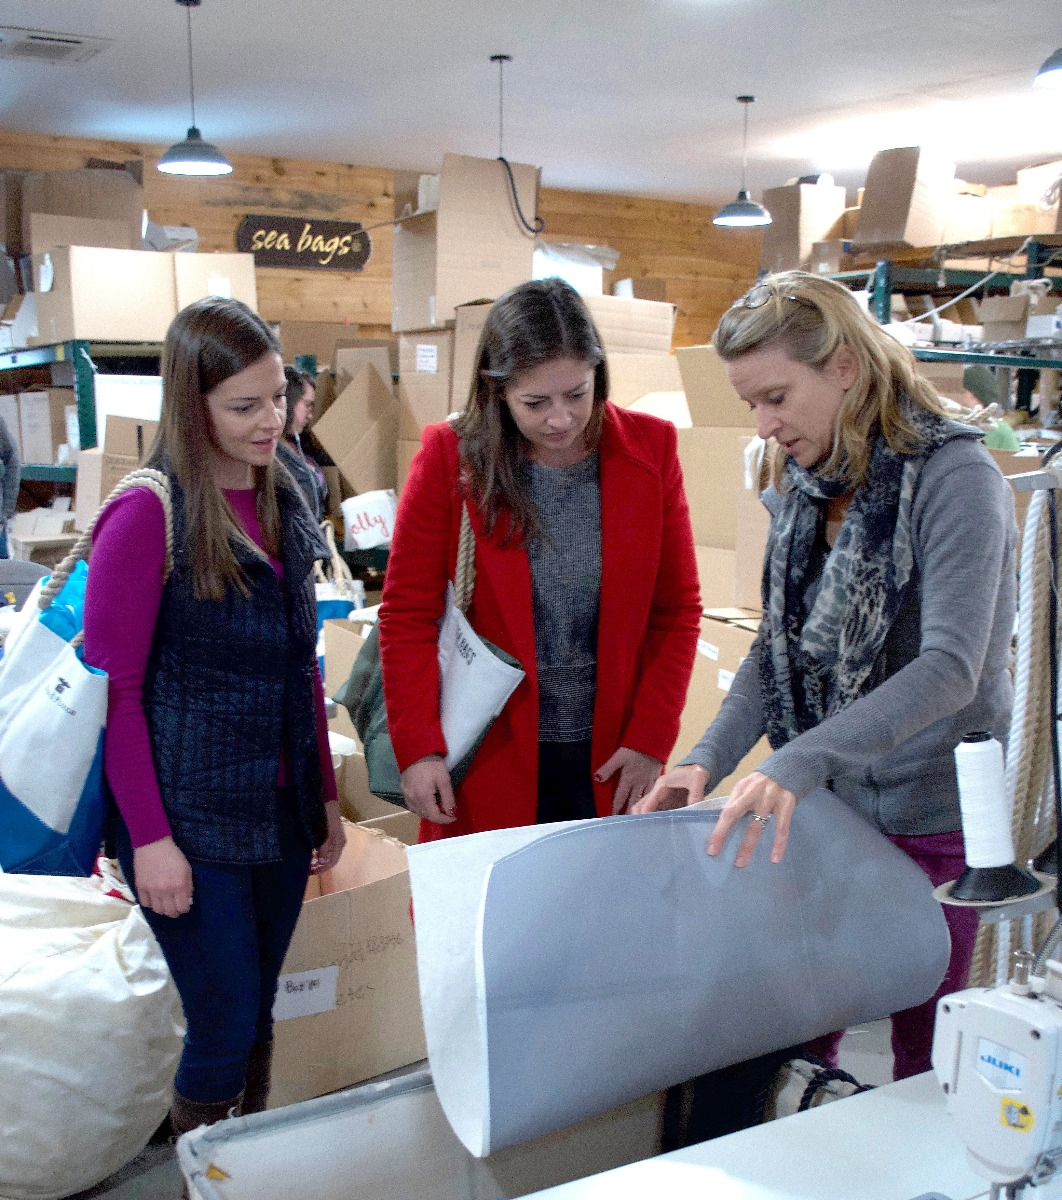 Examining some of Sea Bags' signature recycled sail material